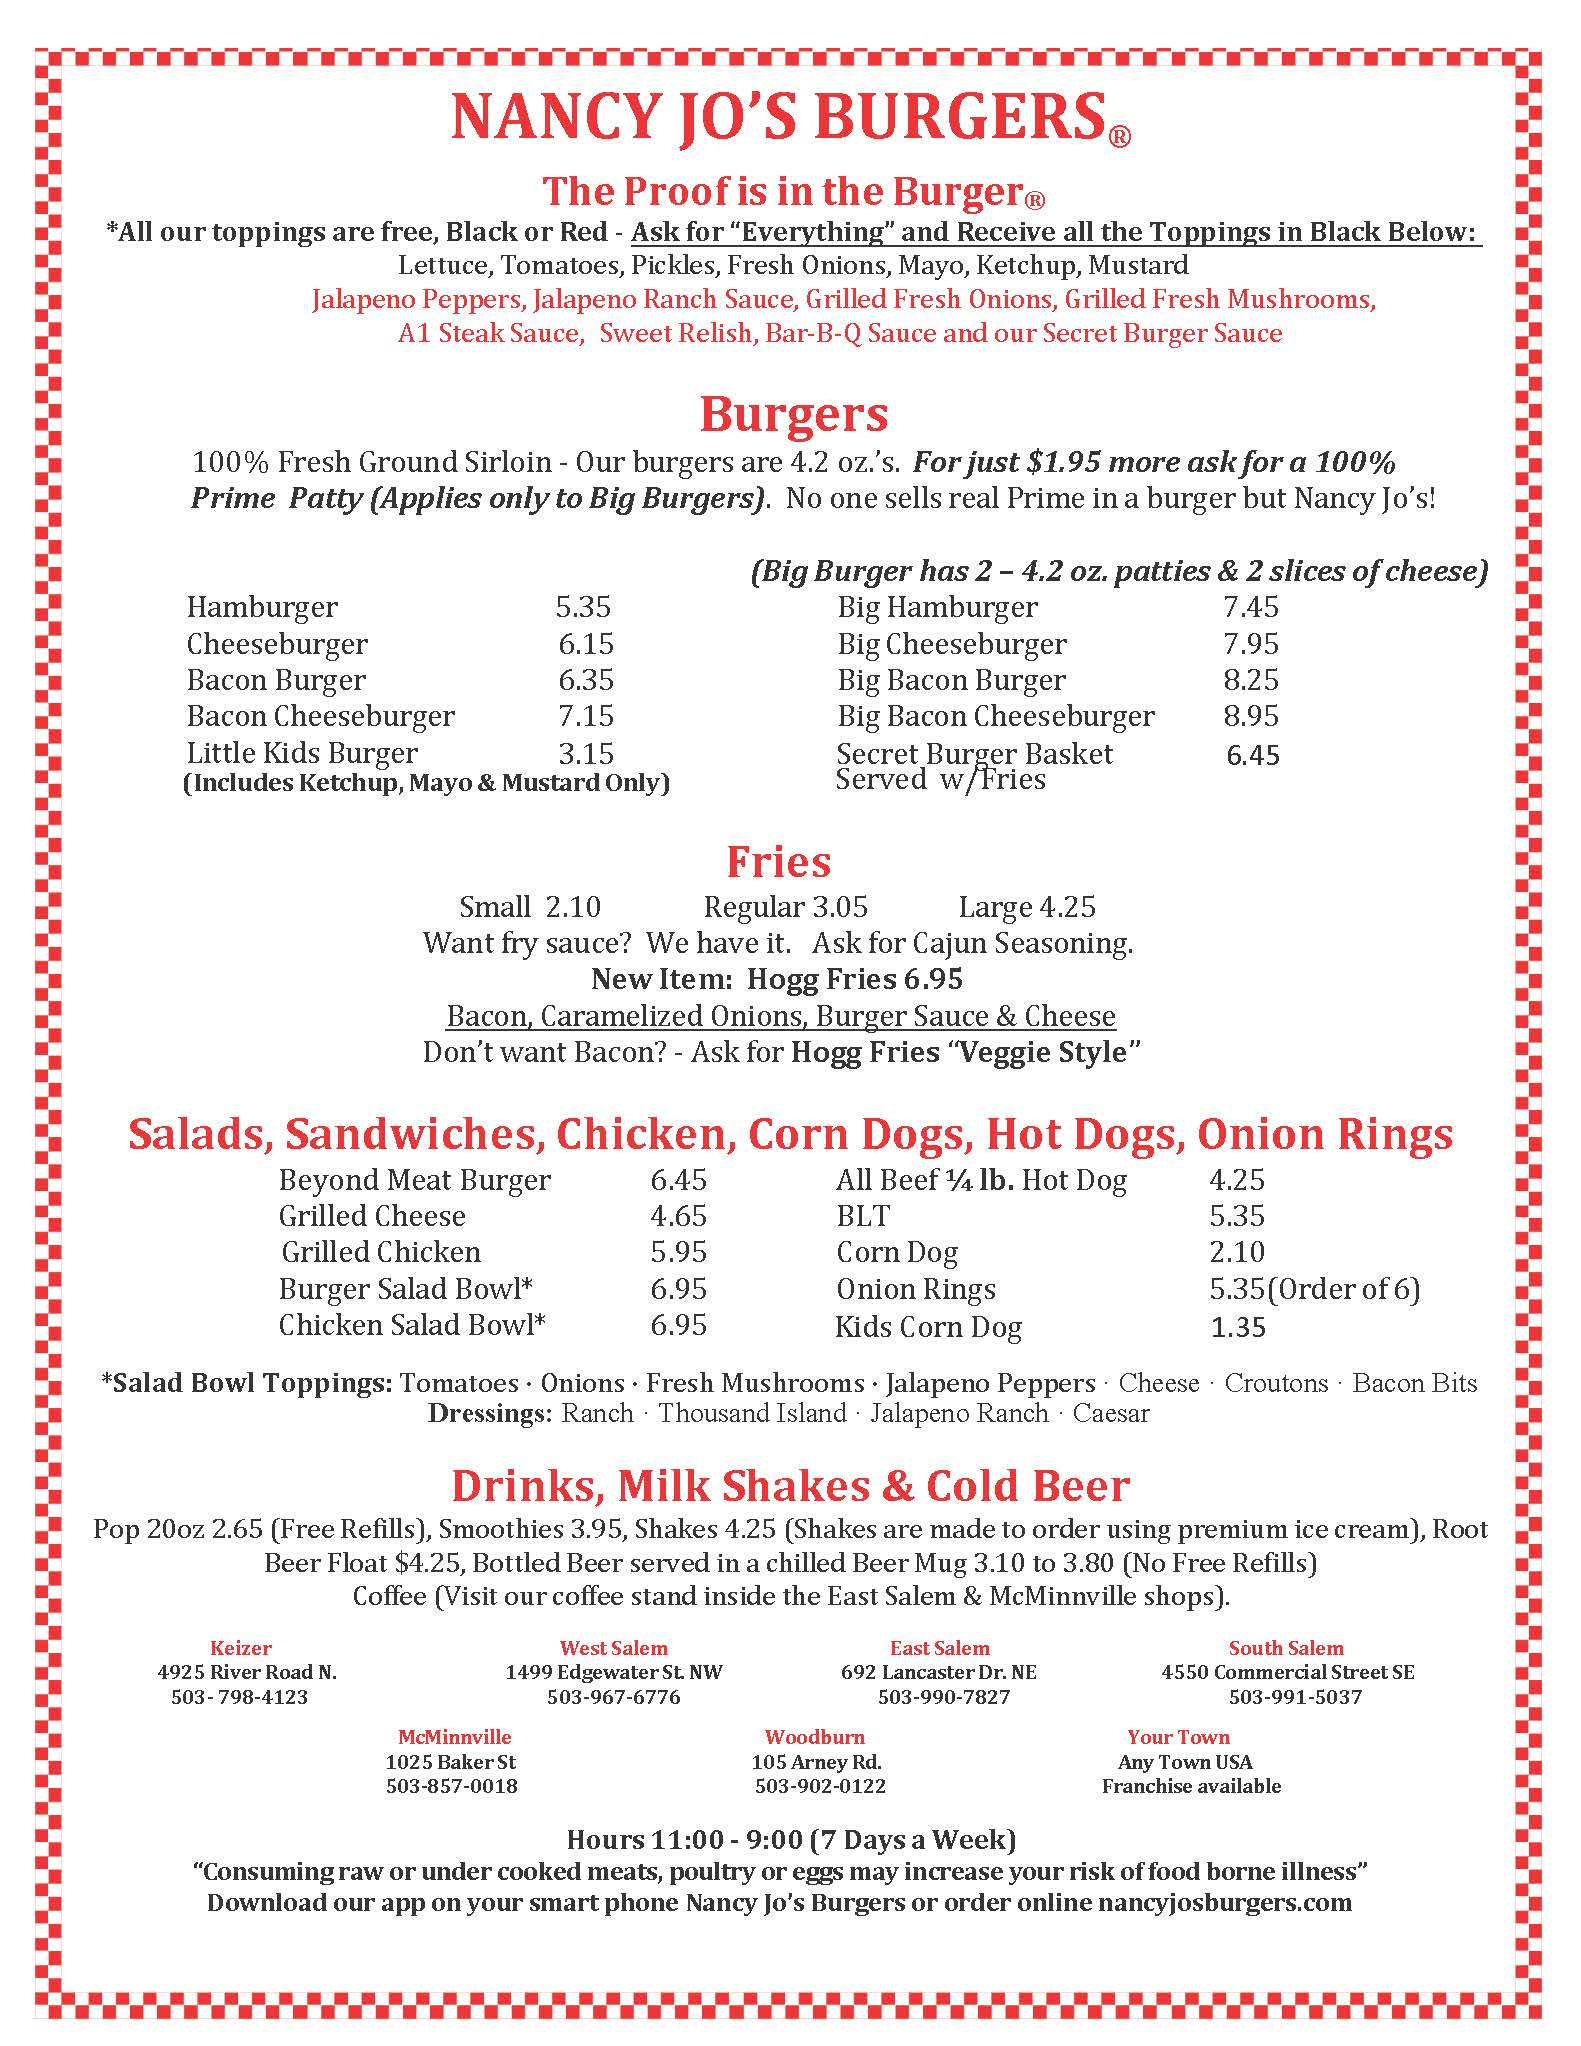 Nancy Jo's Burgers & Fries - Menu